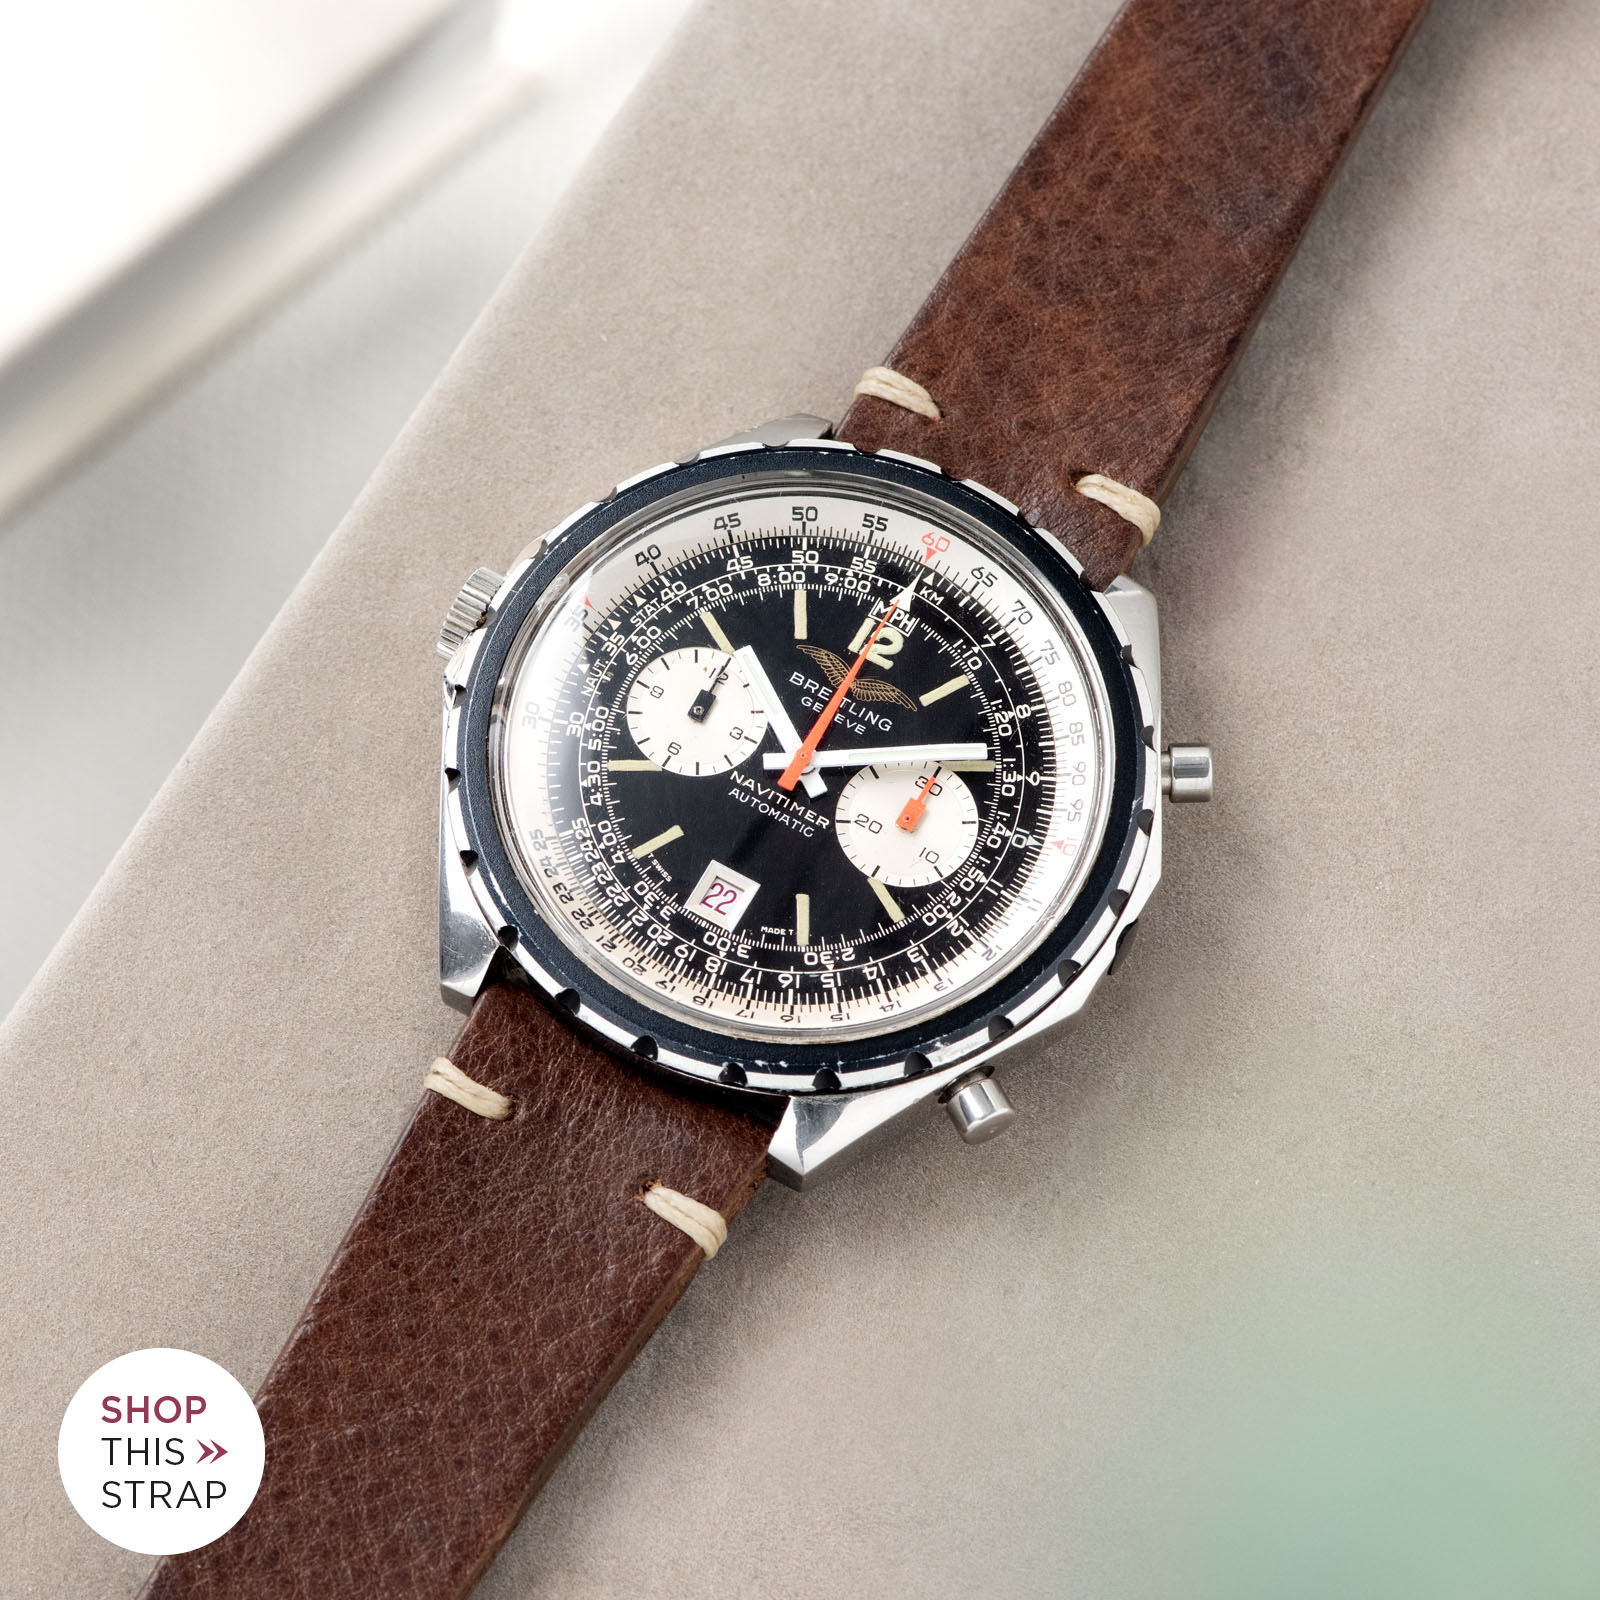 Bulang and Sons_Strapguide_Breitling Navitimer ref issued to iraqi air force ref 1806_Lumberjack Brown Leather Watch Strap _005